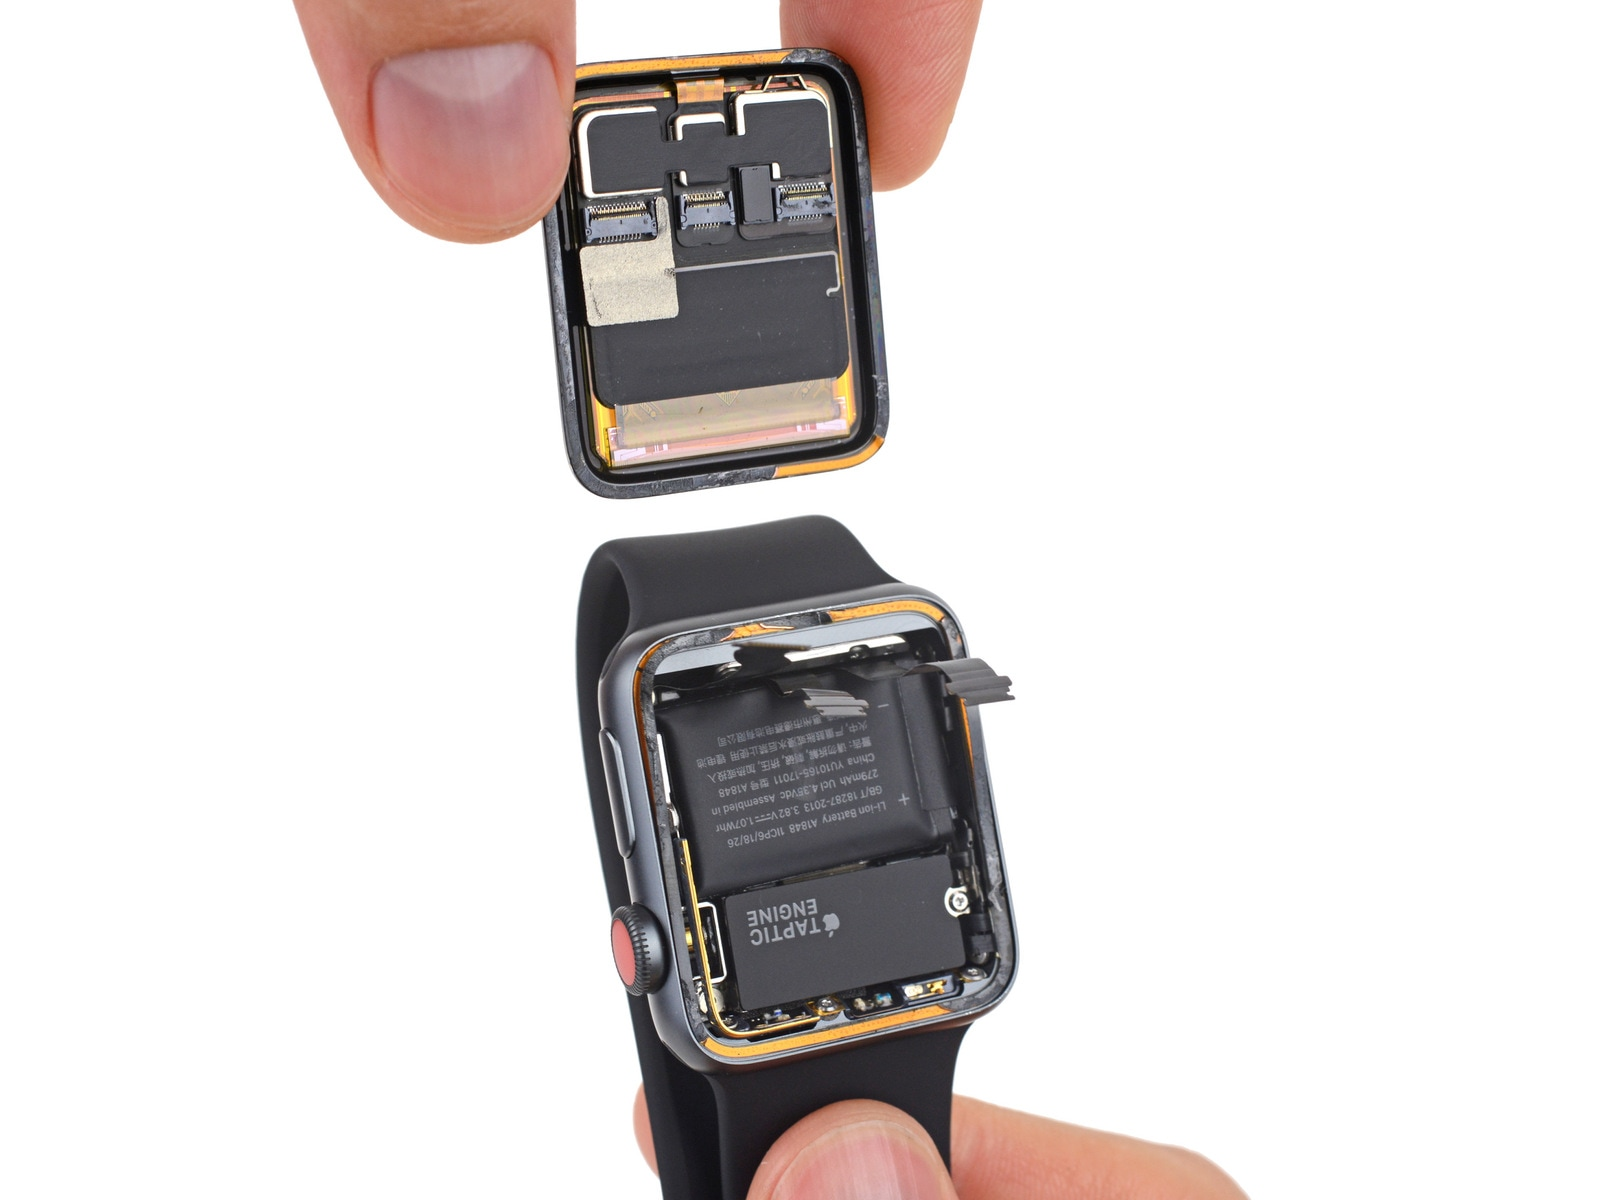 Desmontagem feita pela iFixit do Apple Watch Series 3 (GPS + Cellular)